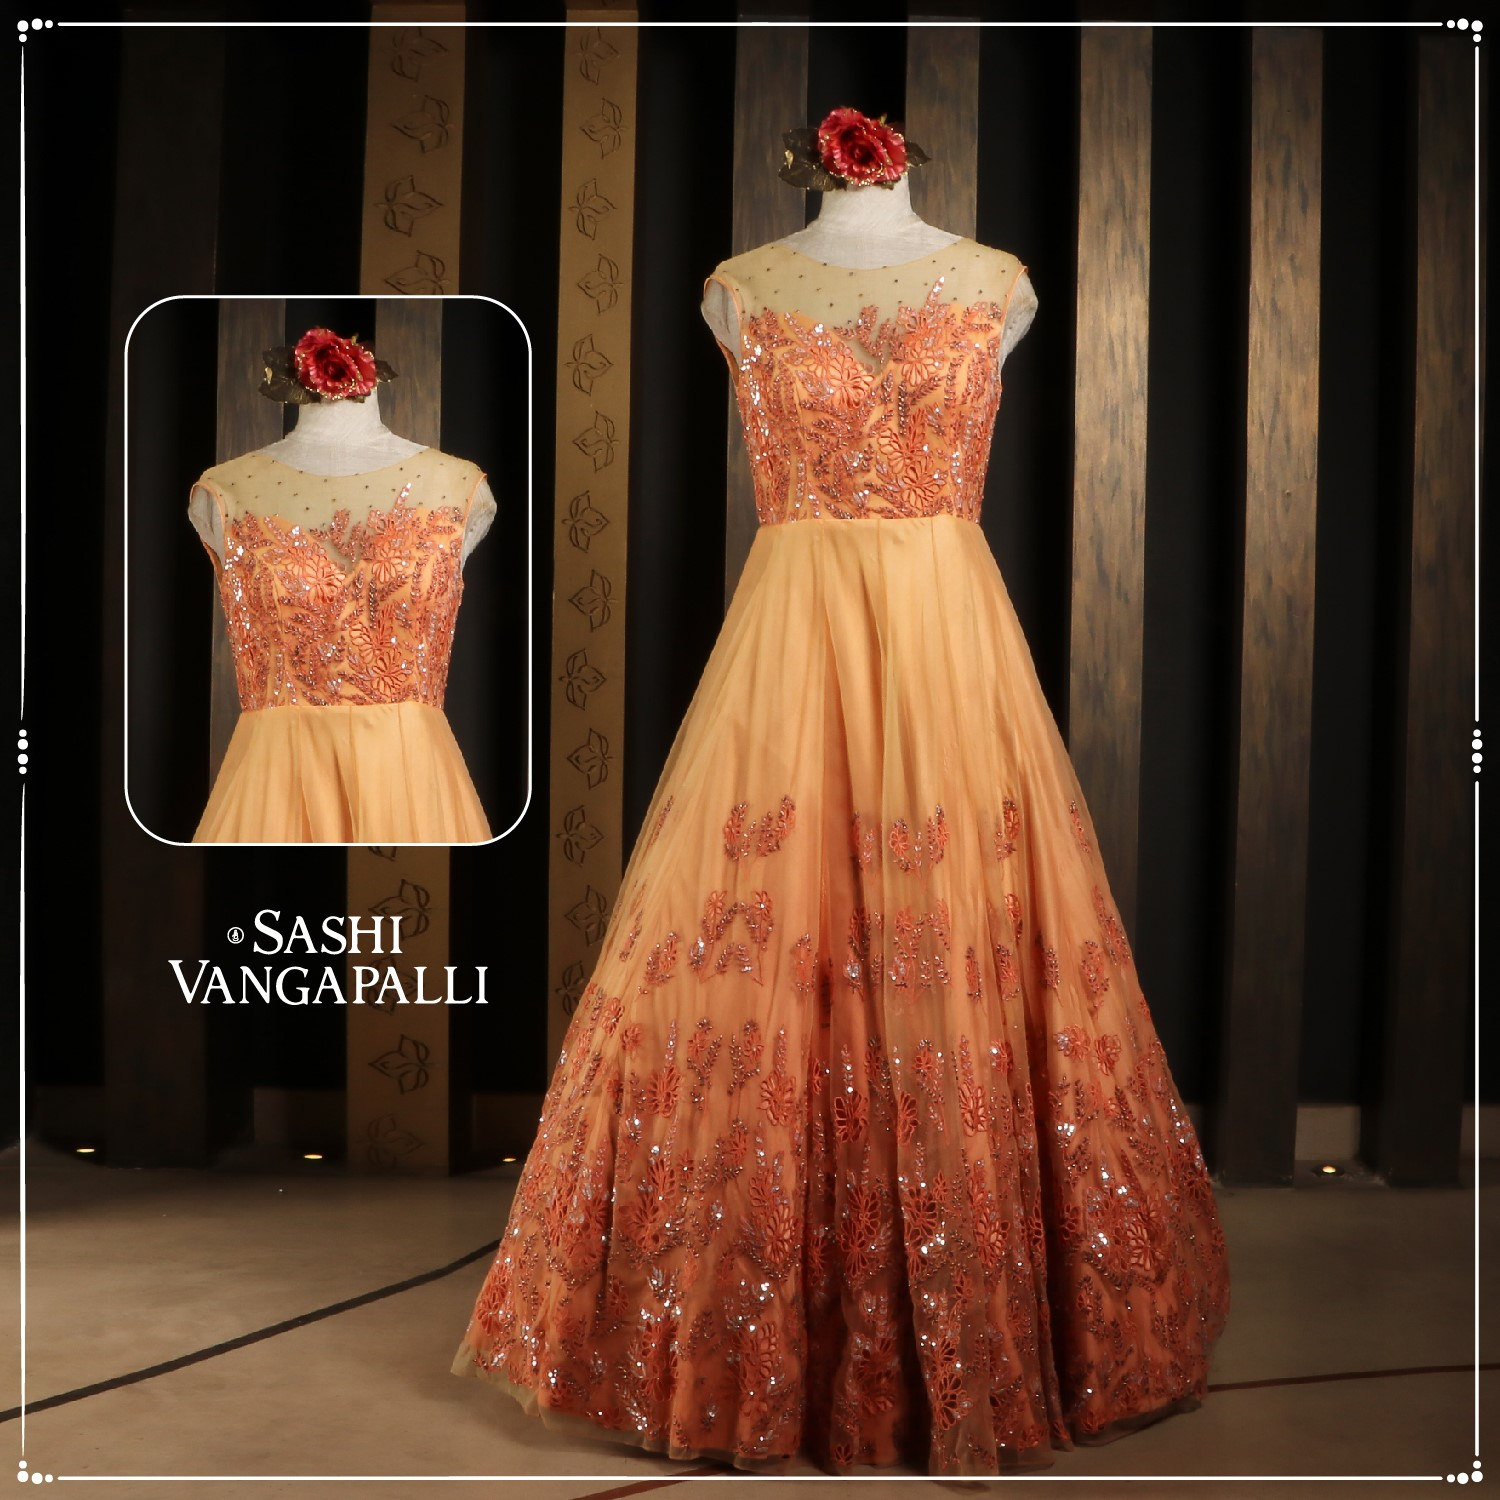 A luxe confection of the net with intricate details underneath luxury silhouette with flowered intricate embroidery basking its stunning art.  Personifying modern women with abundance with the exuberance of summery shades.  Explore our range of Indo-western wedding wear statement styles.  For Orders Contact: +91 9000777796 2021-06-27